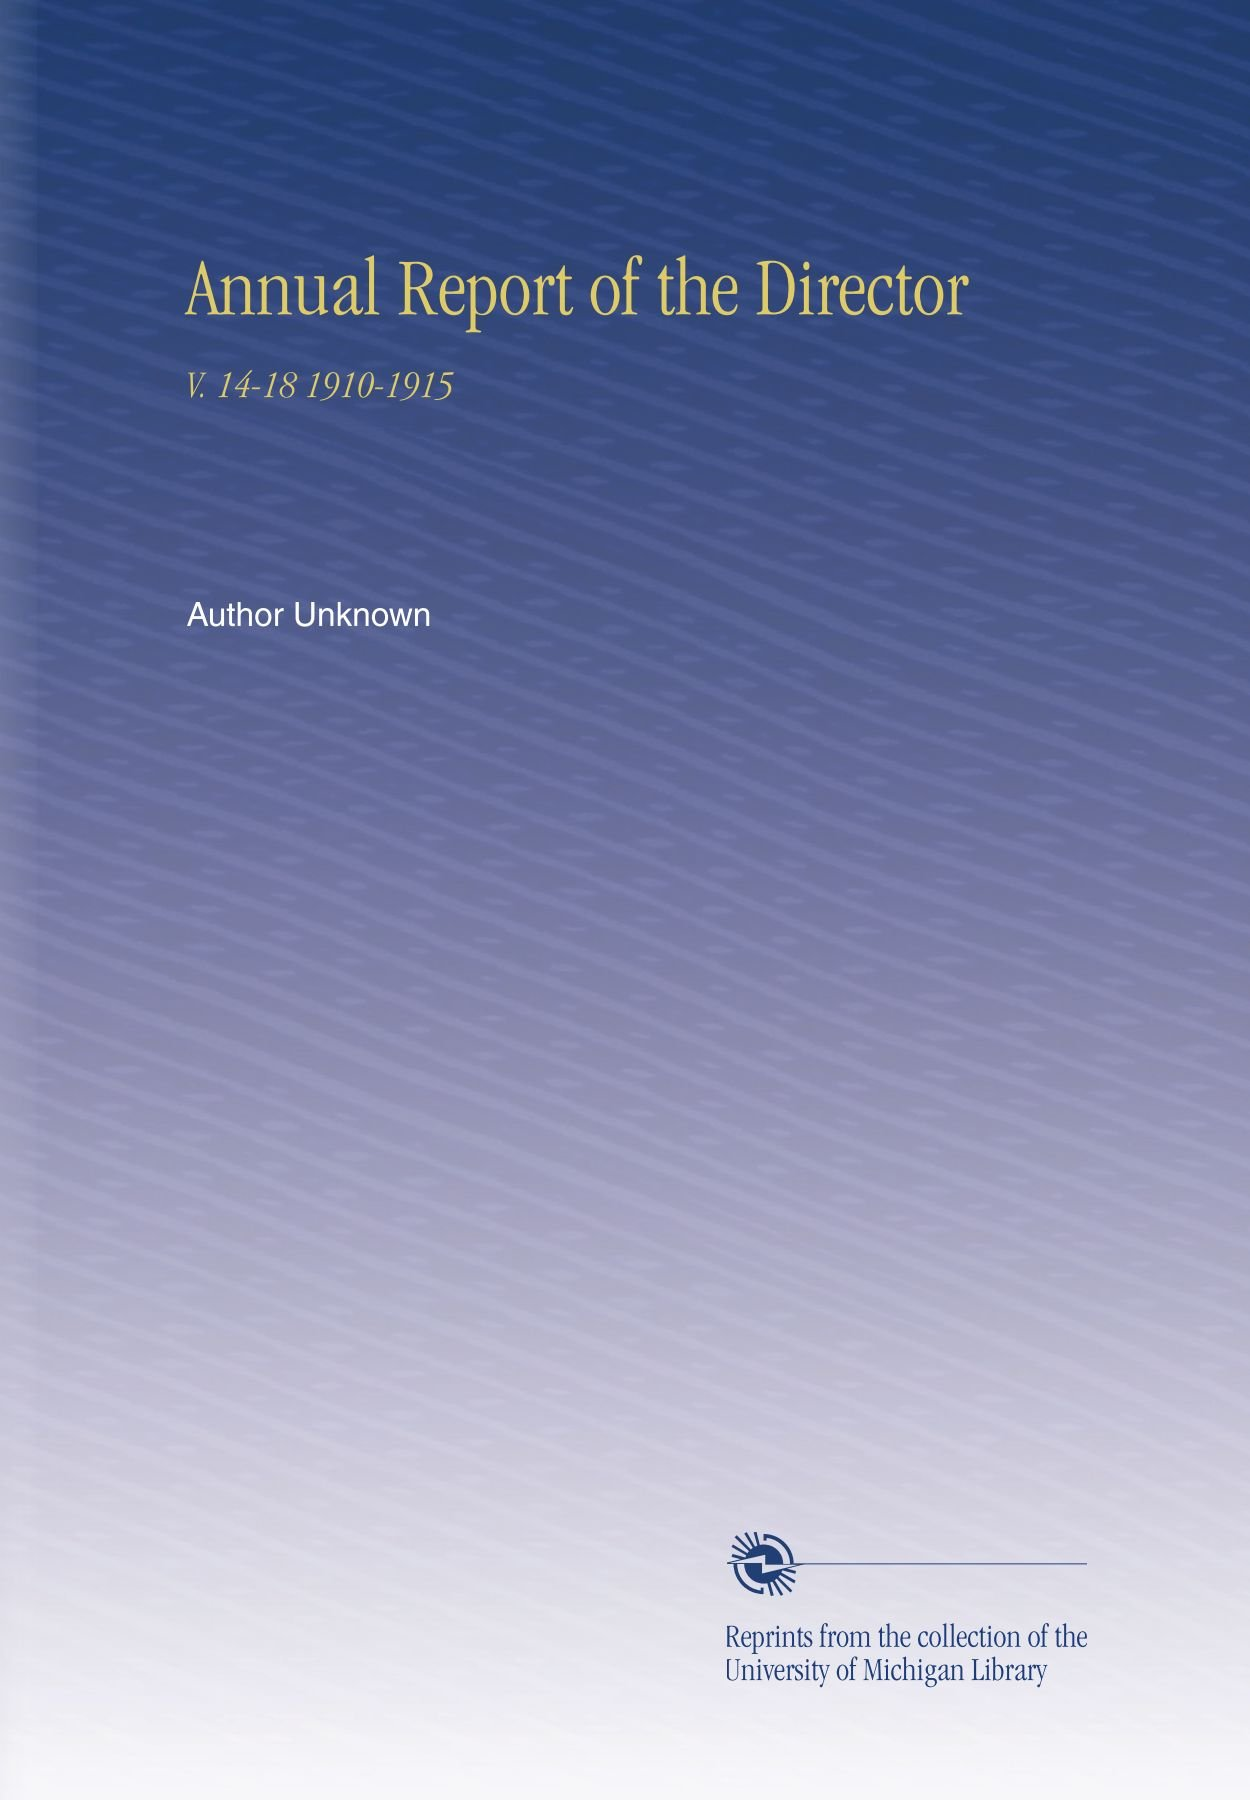 Annual Report of the Director: V. 14-18 1910-1915 pdf epub